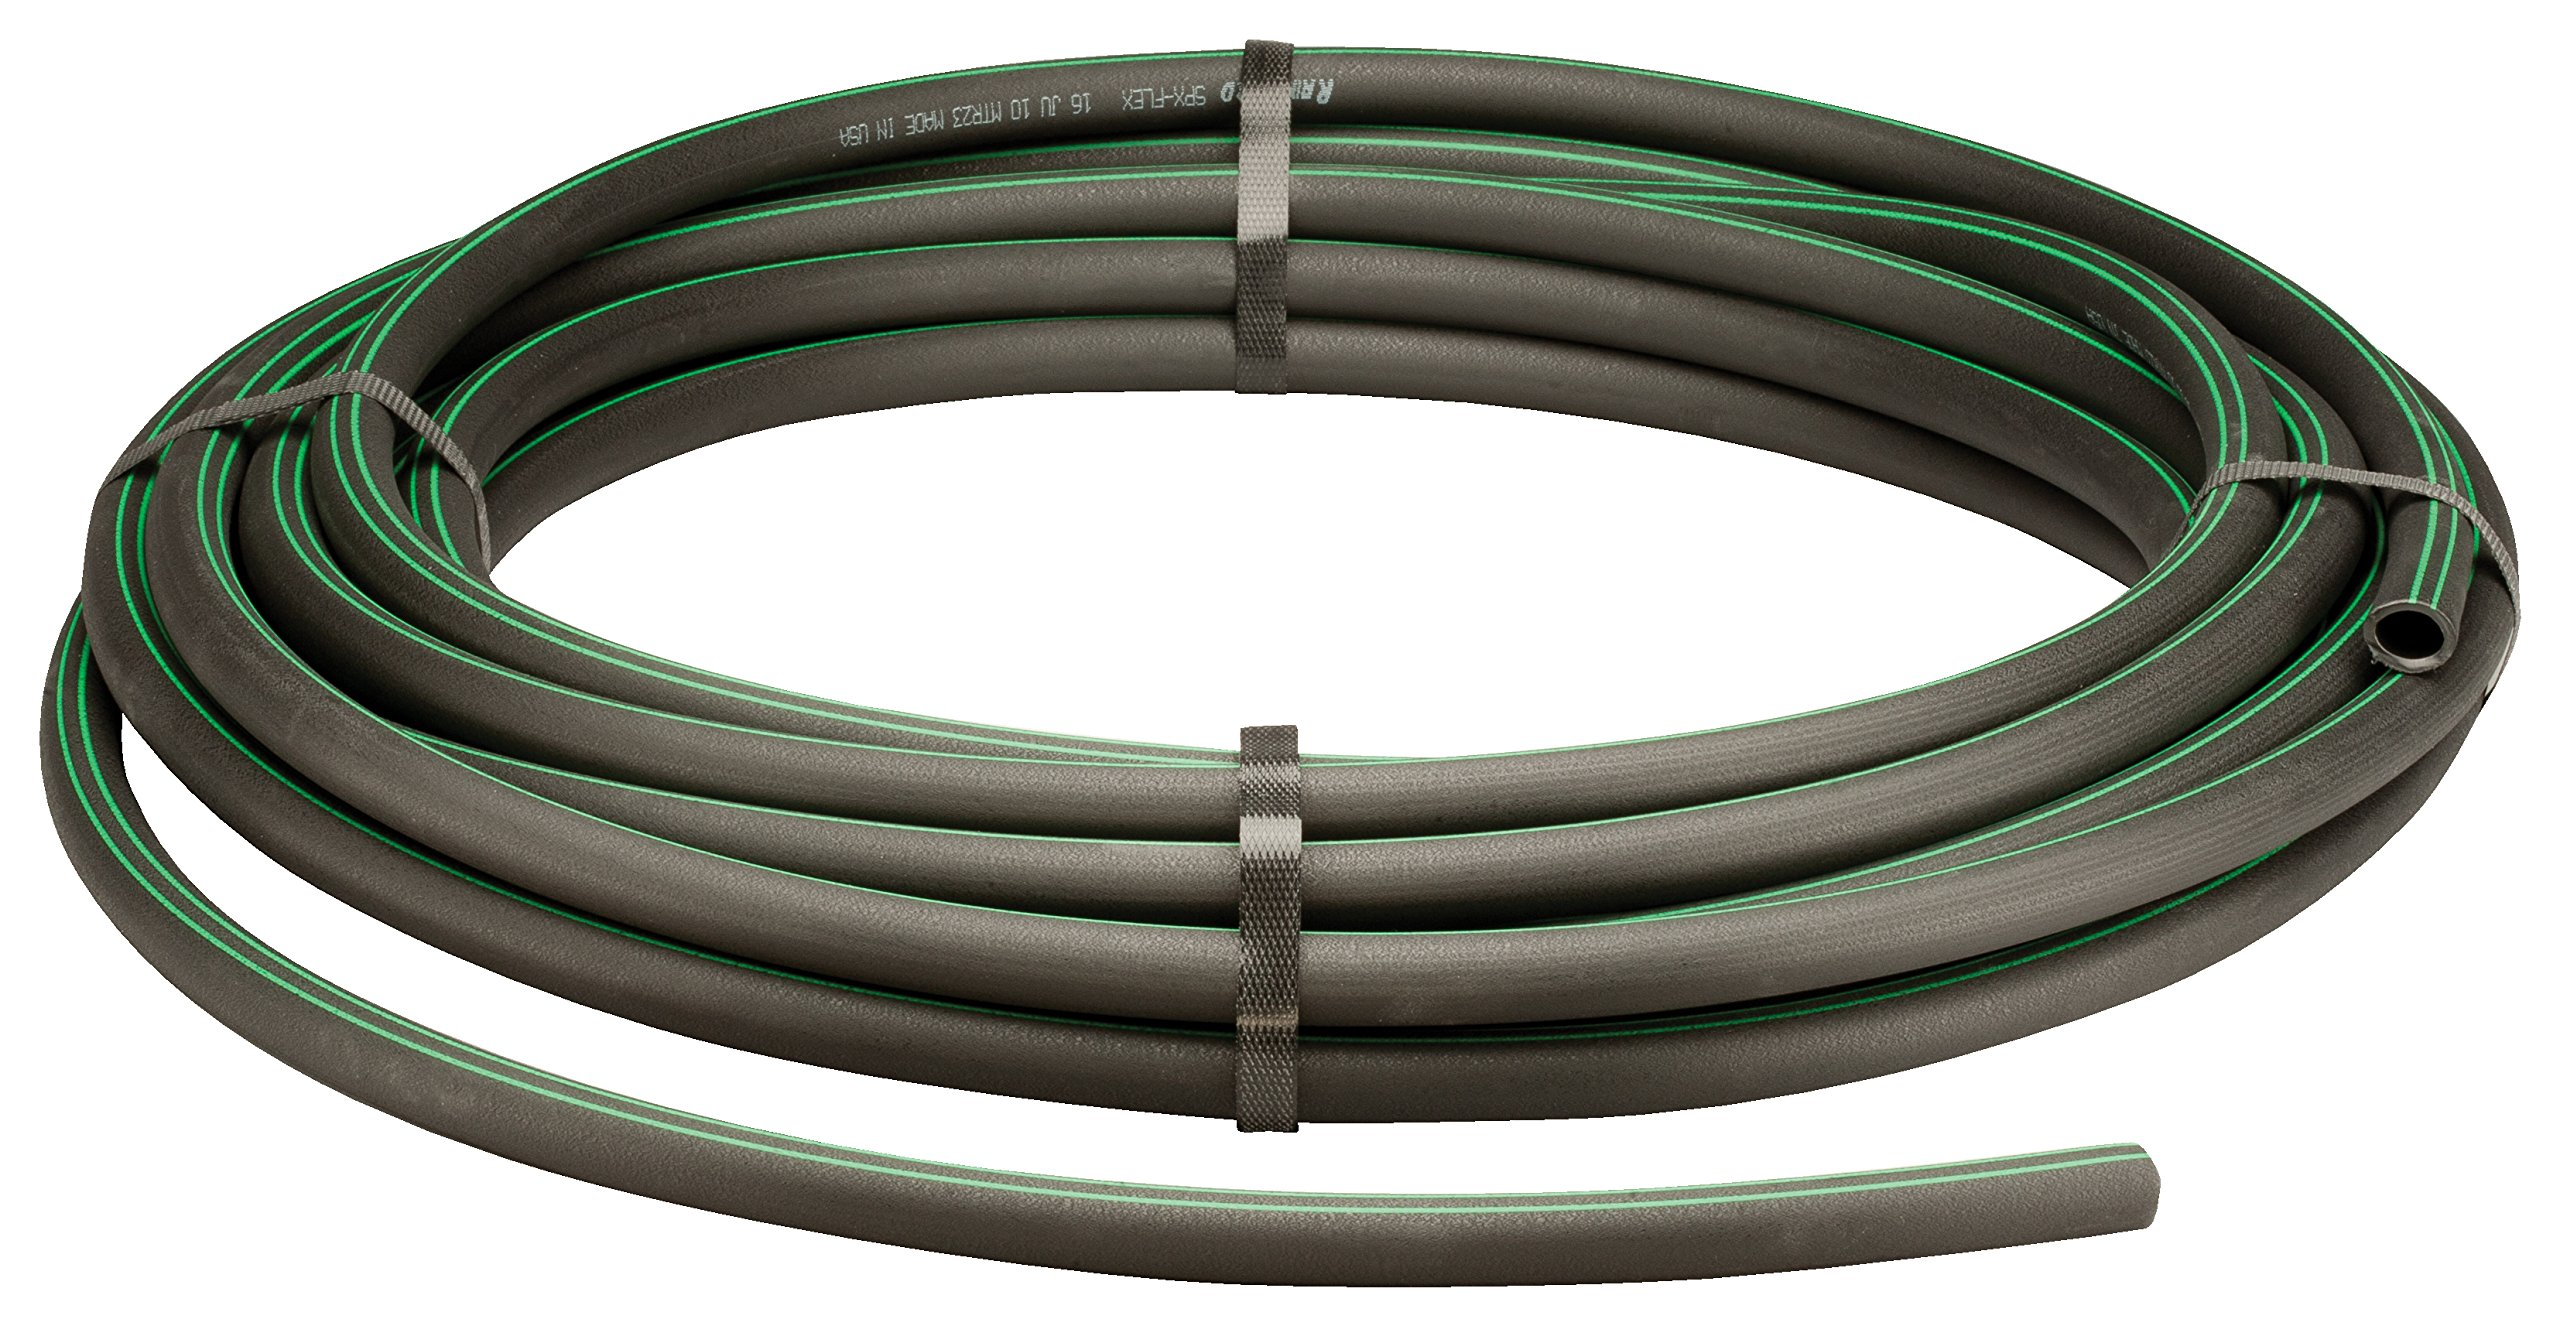 Rain Bird SWGP50 EZ Pipe Flexible Swing Pipe, 50' Roll